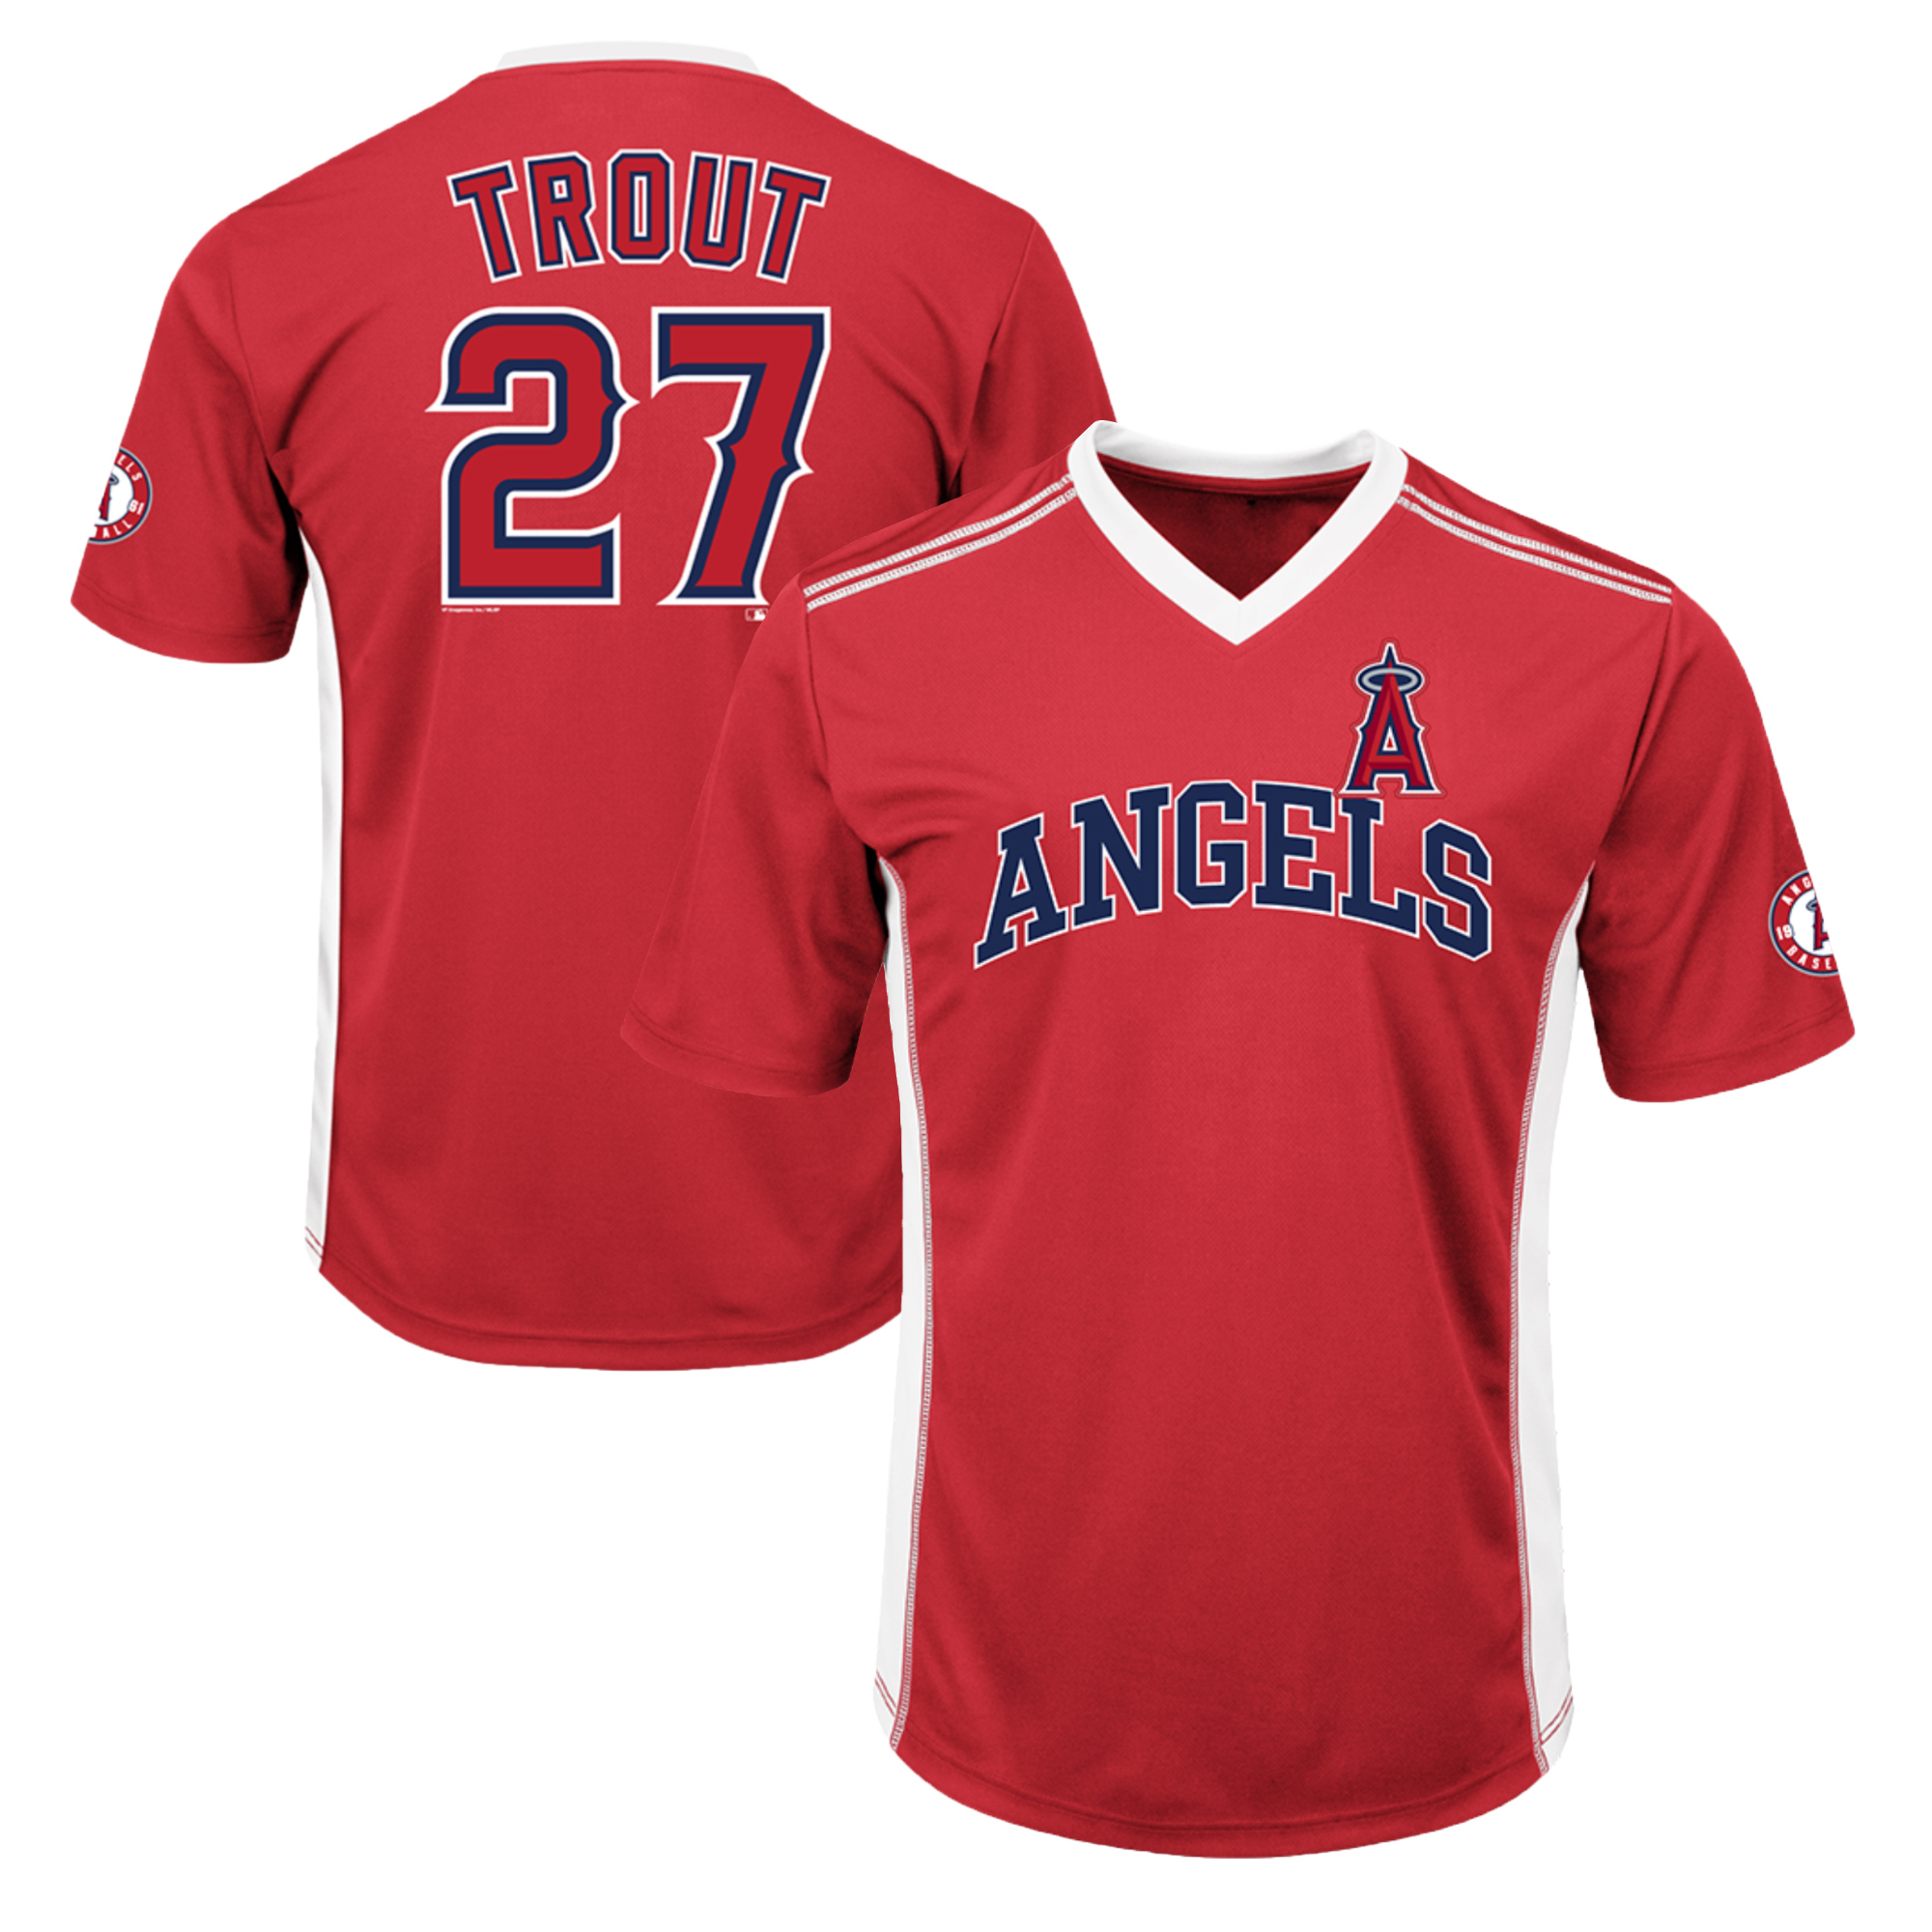 Men's Majestic Mike Trout Red Los Angeles Angels Player Name & Number Cool Base V-Neck T-Shirt by MAJESTIC LSG